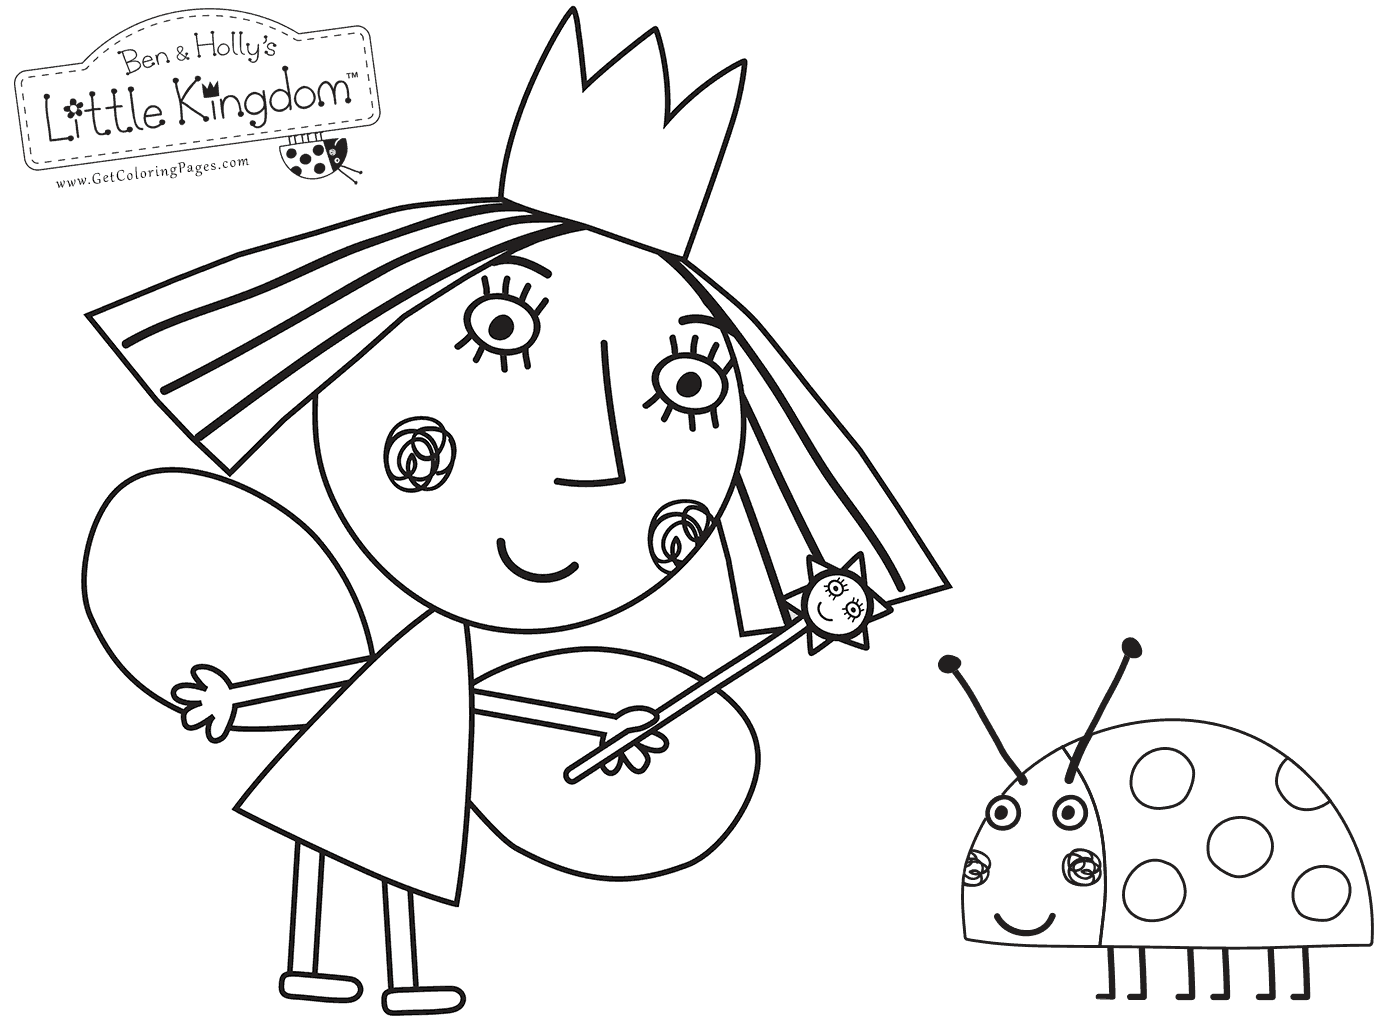 Ben And Holly Drawing at GetDrawings.com   Free for personal use Ben ...